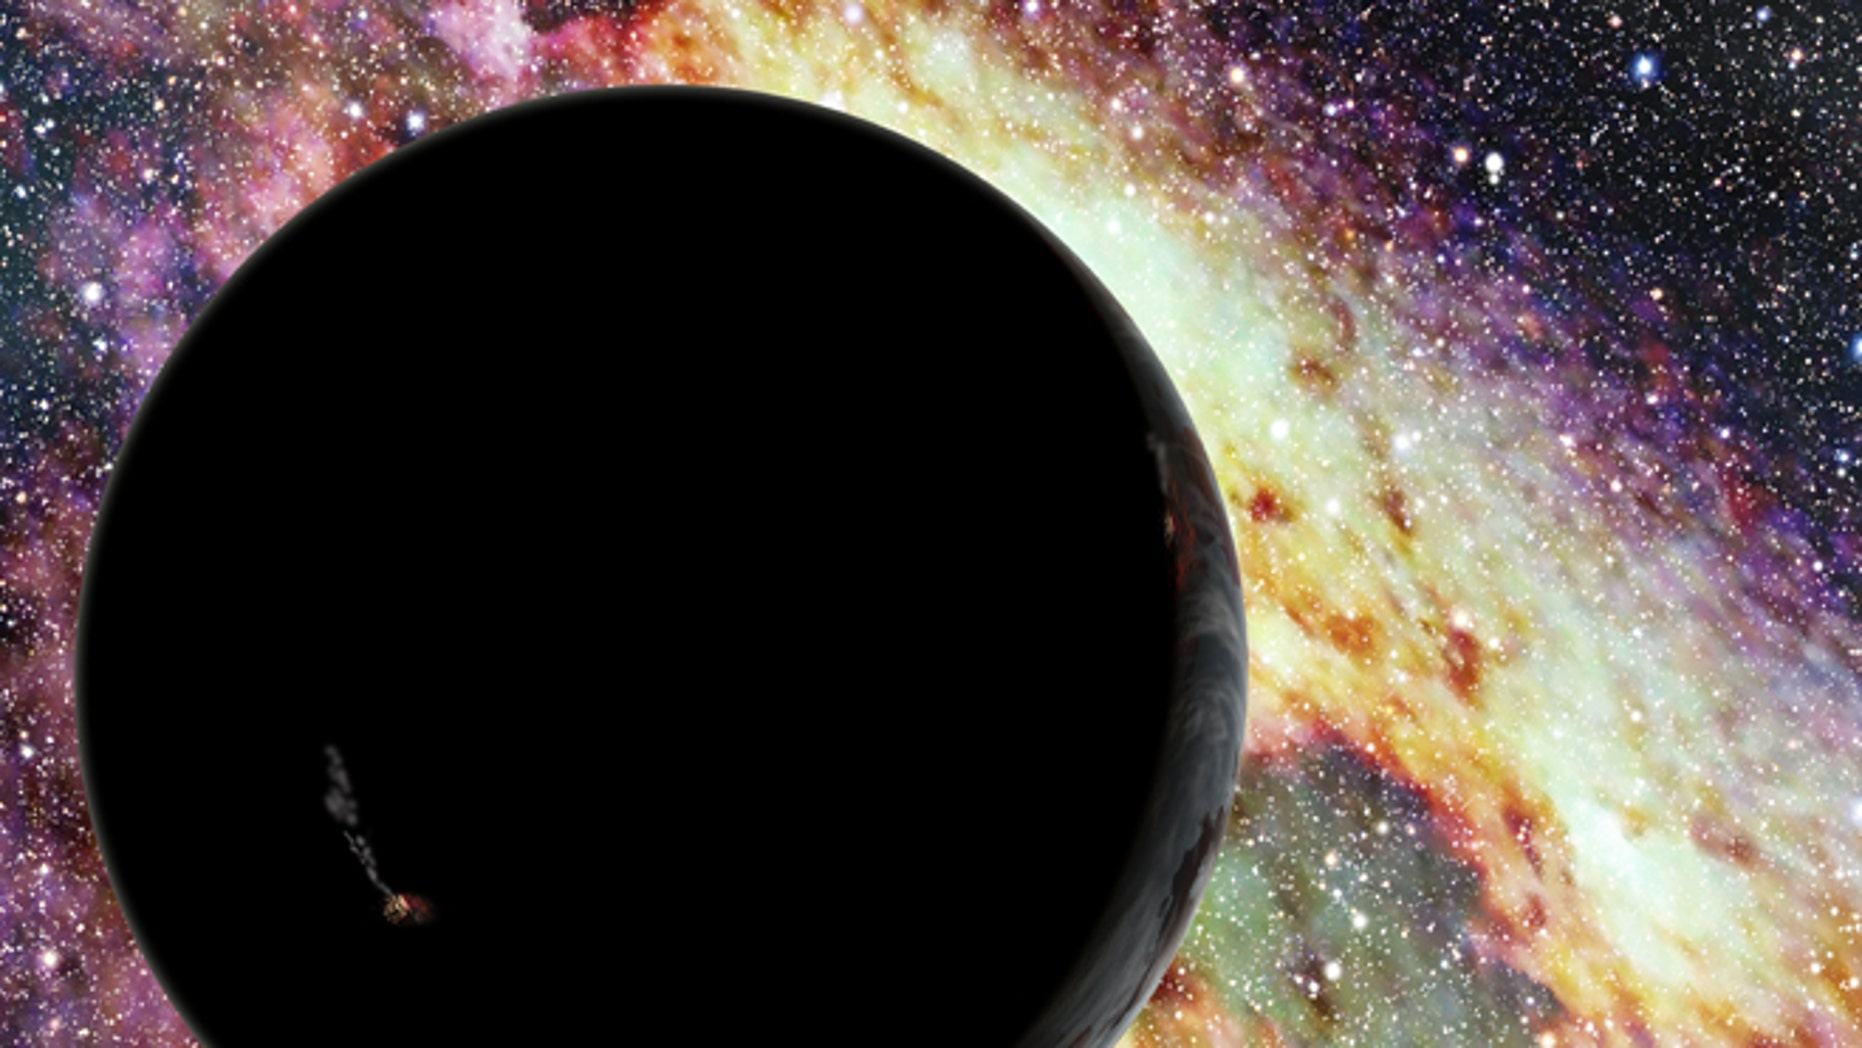 In this artist's conception, a runaway planet zooms through interstellar space. New research suggests that the supermassive black hole at our galaxy's center can fling planets outward at relativistic speeds. Eventually, such worlds will escape the Milky Way and travel through the lonely intergalactic void.